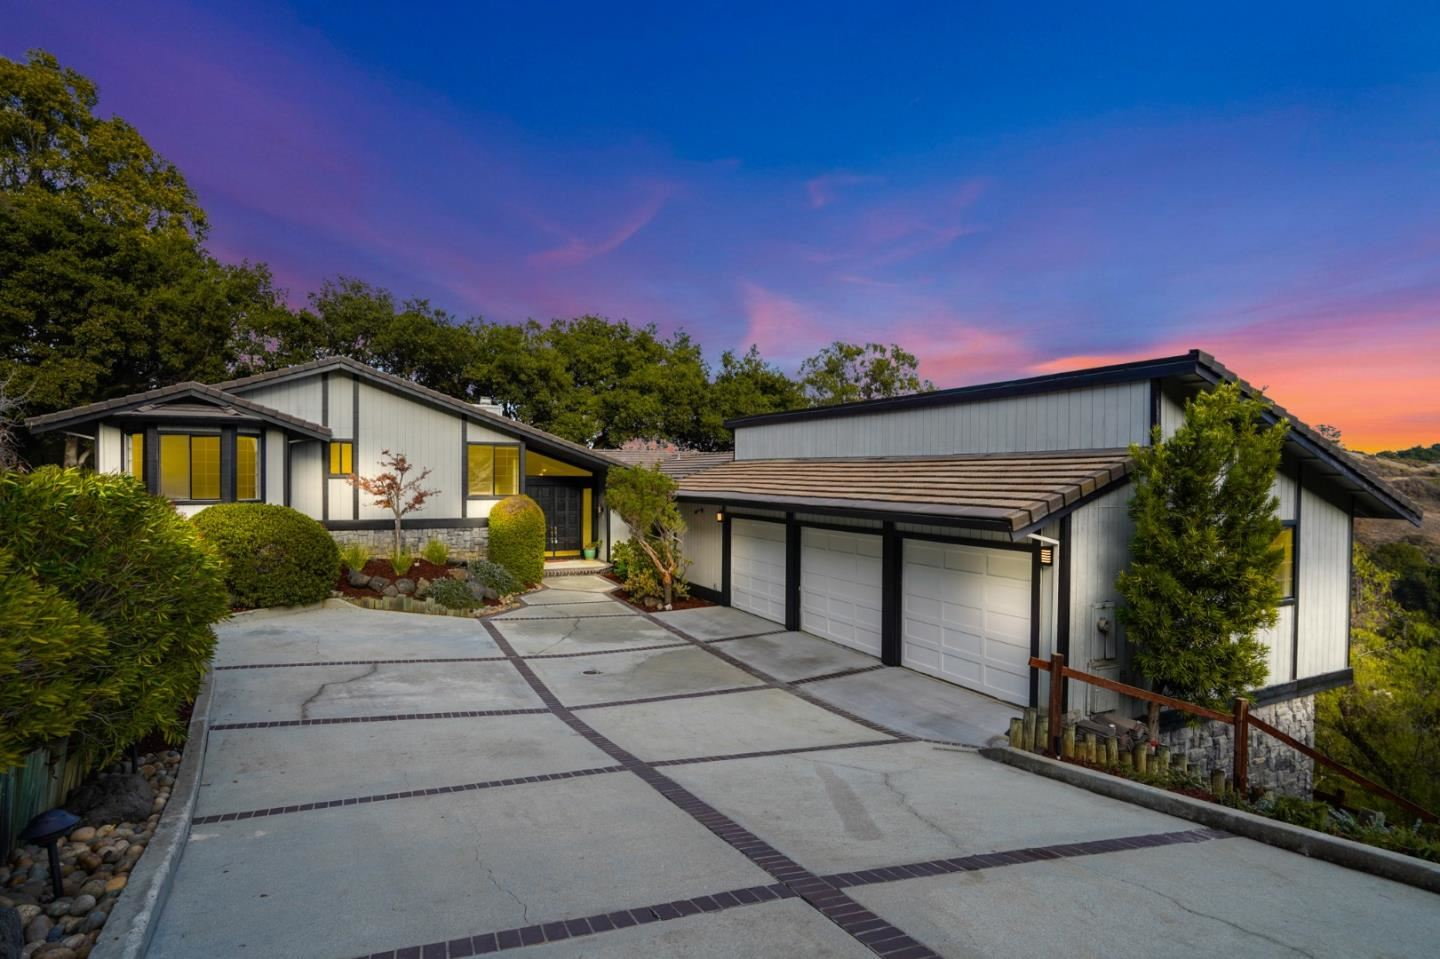 Photo for 22325 Regnart RD, CUPERTINO, CA 95014 (MLS # ML81823490)